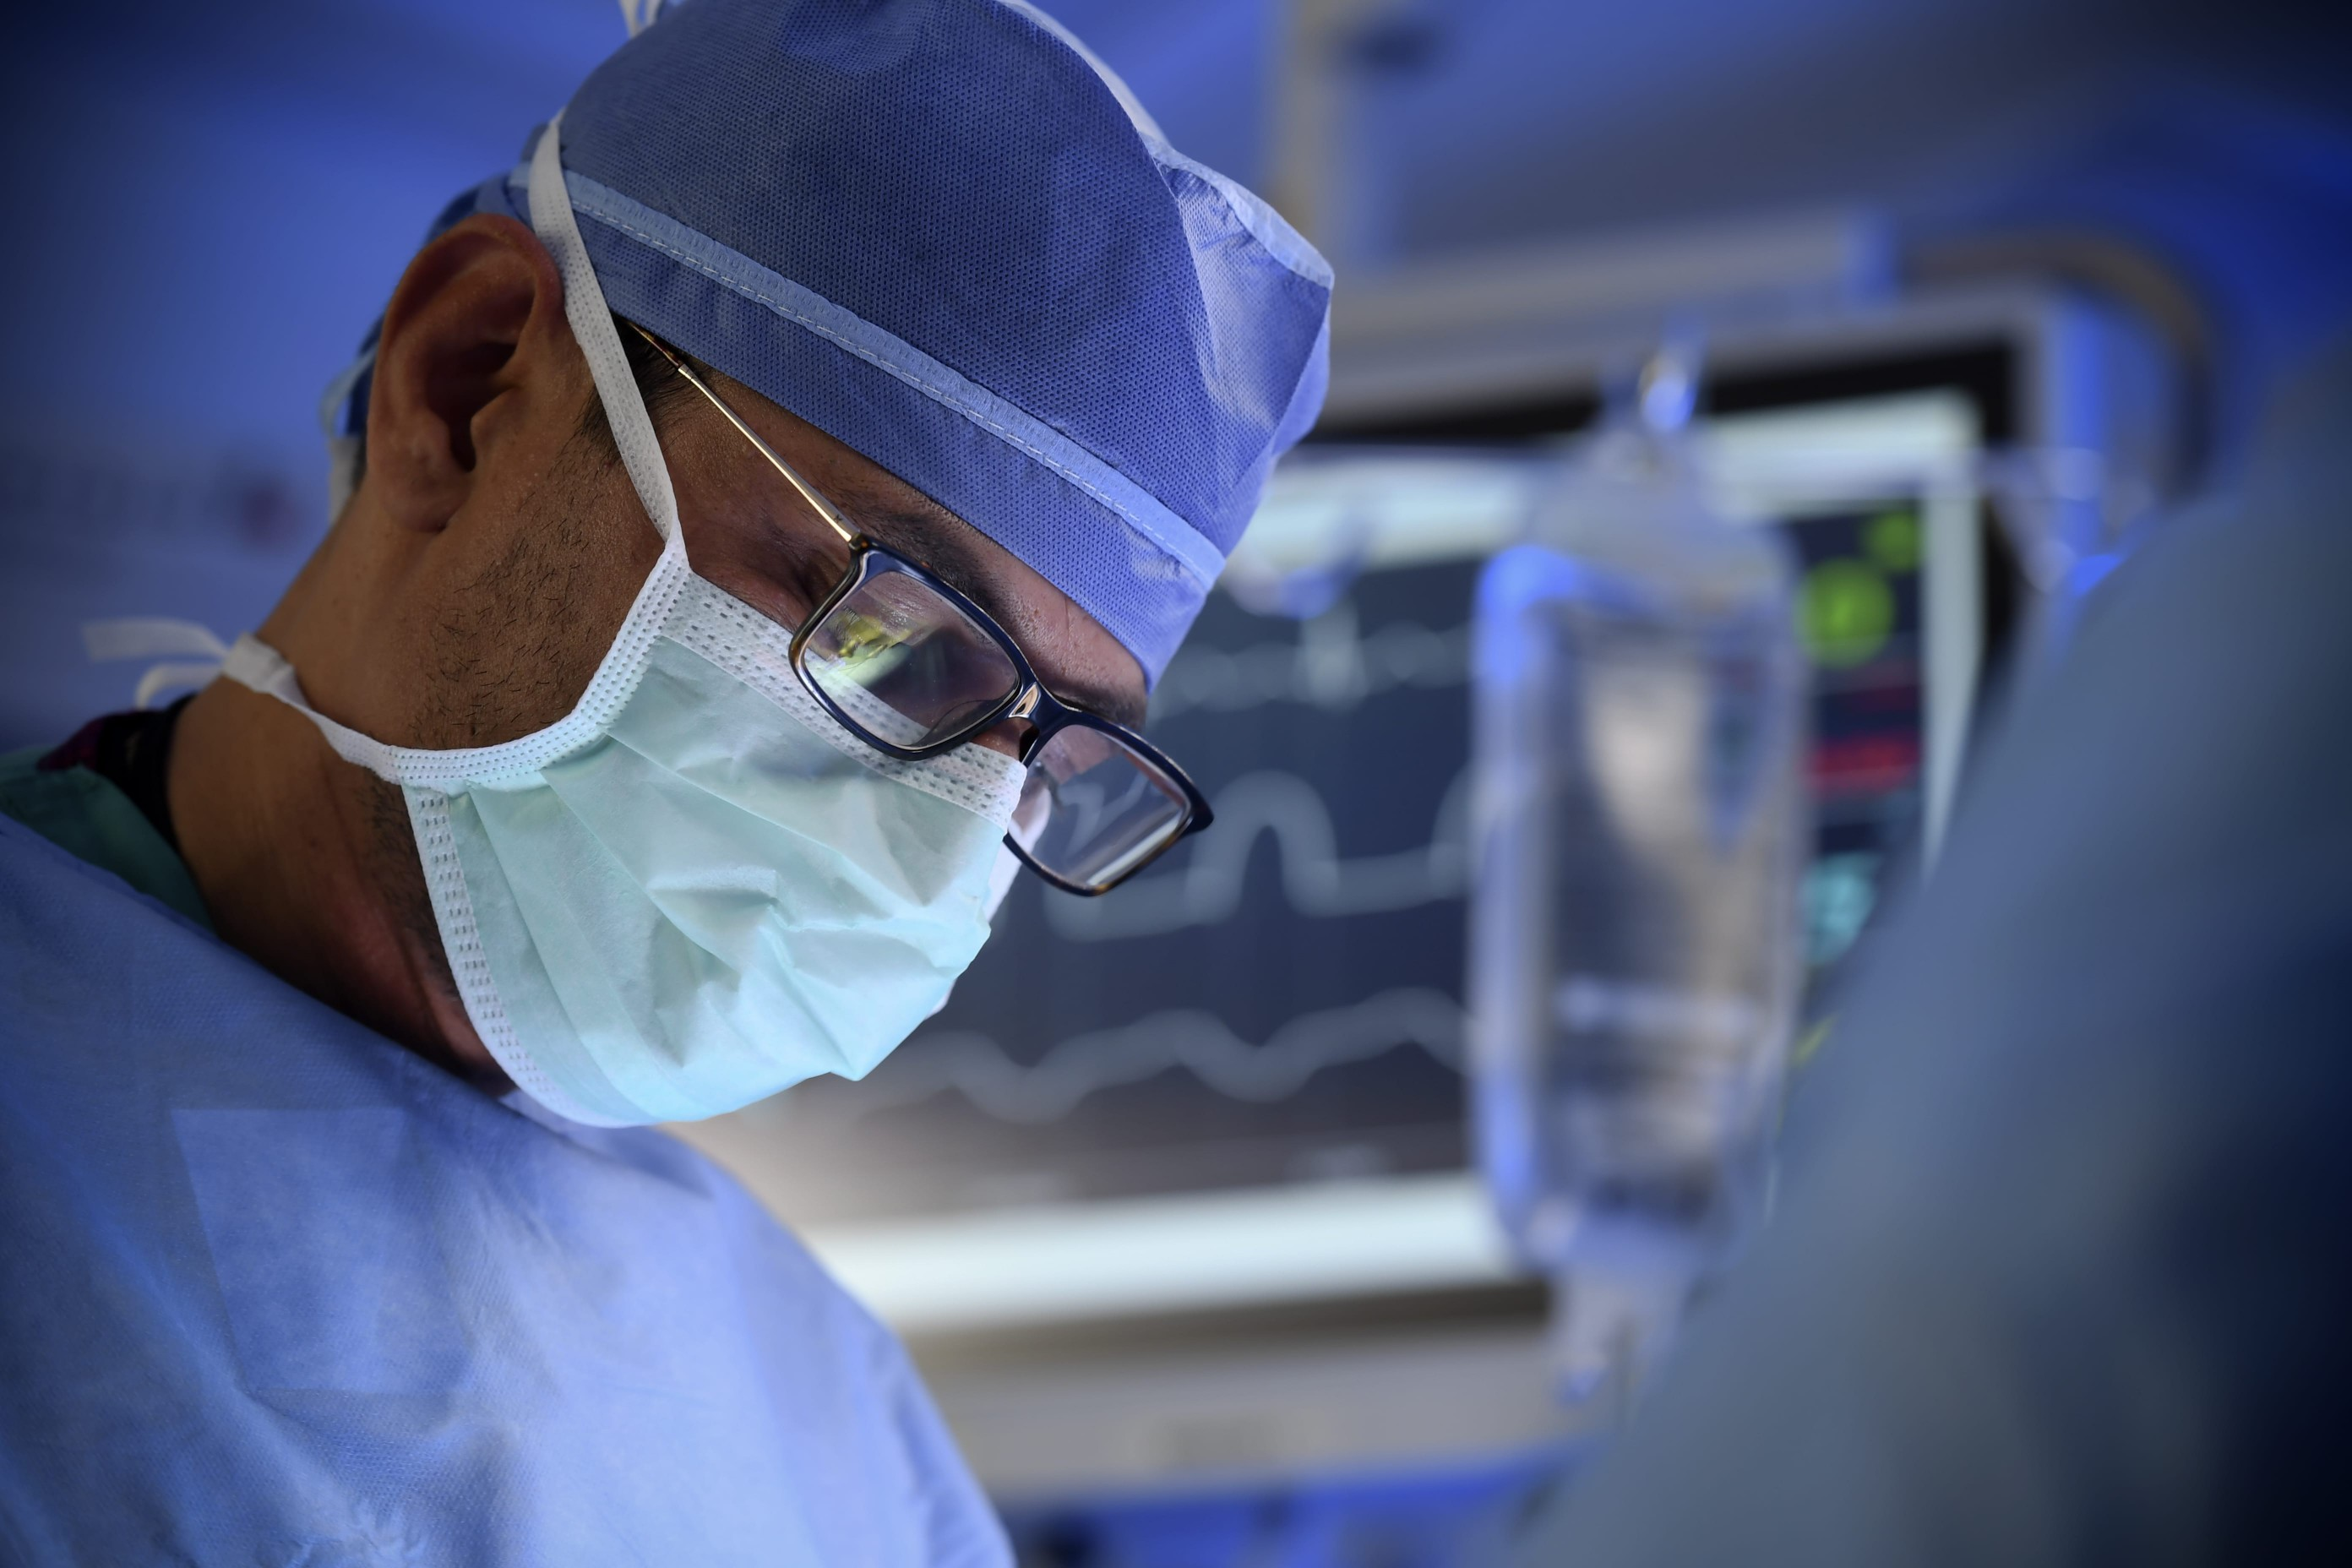 A leading urologic oncologist dressed in surgical attire performs a clinical trial procedure